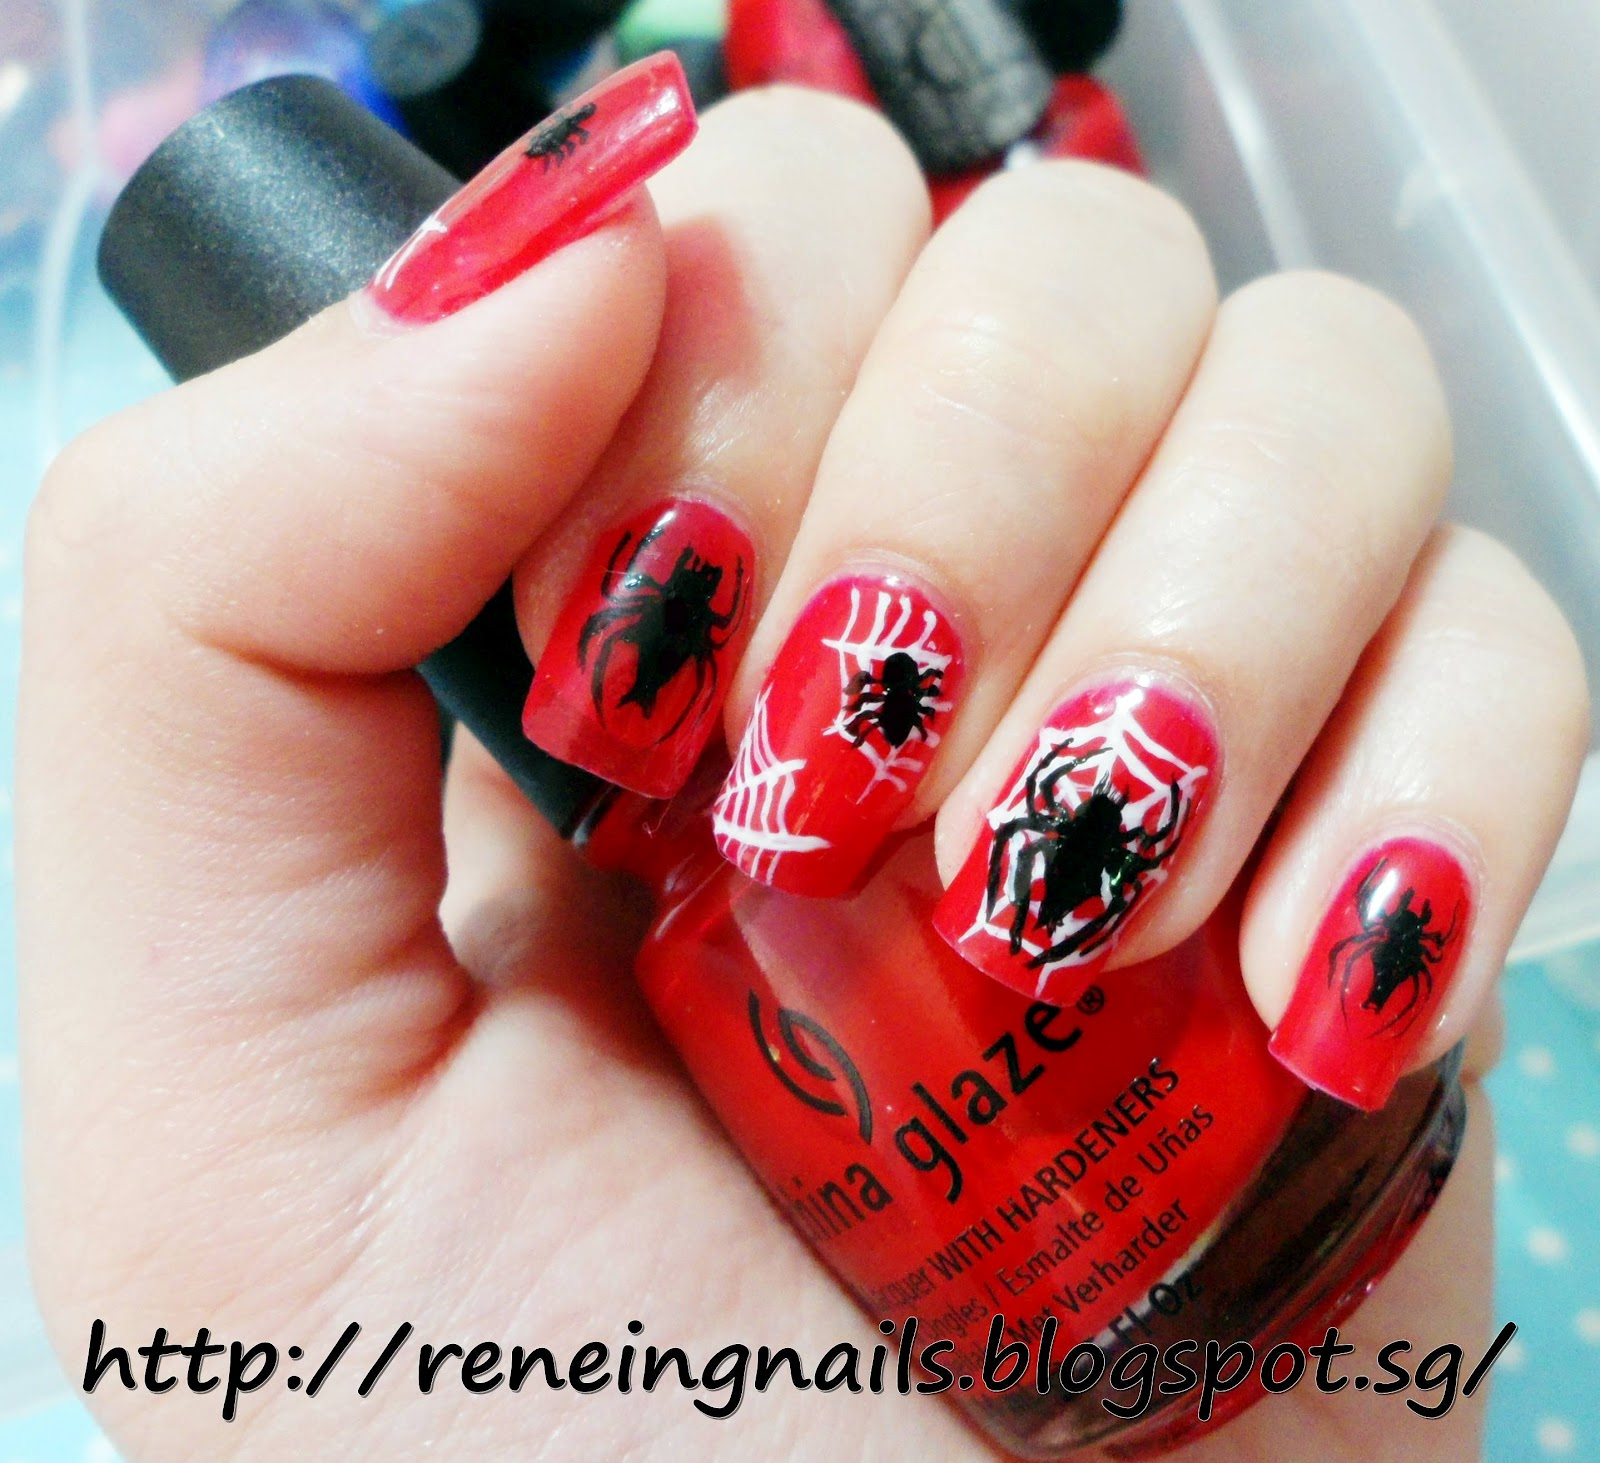 Reneing.Nails: N15045: Spiderman Inspired nail design!